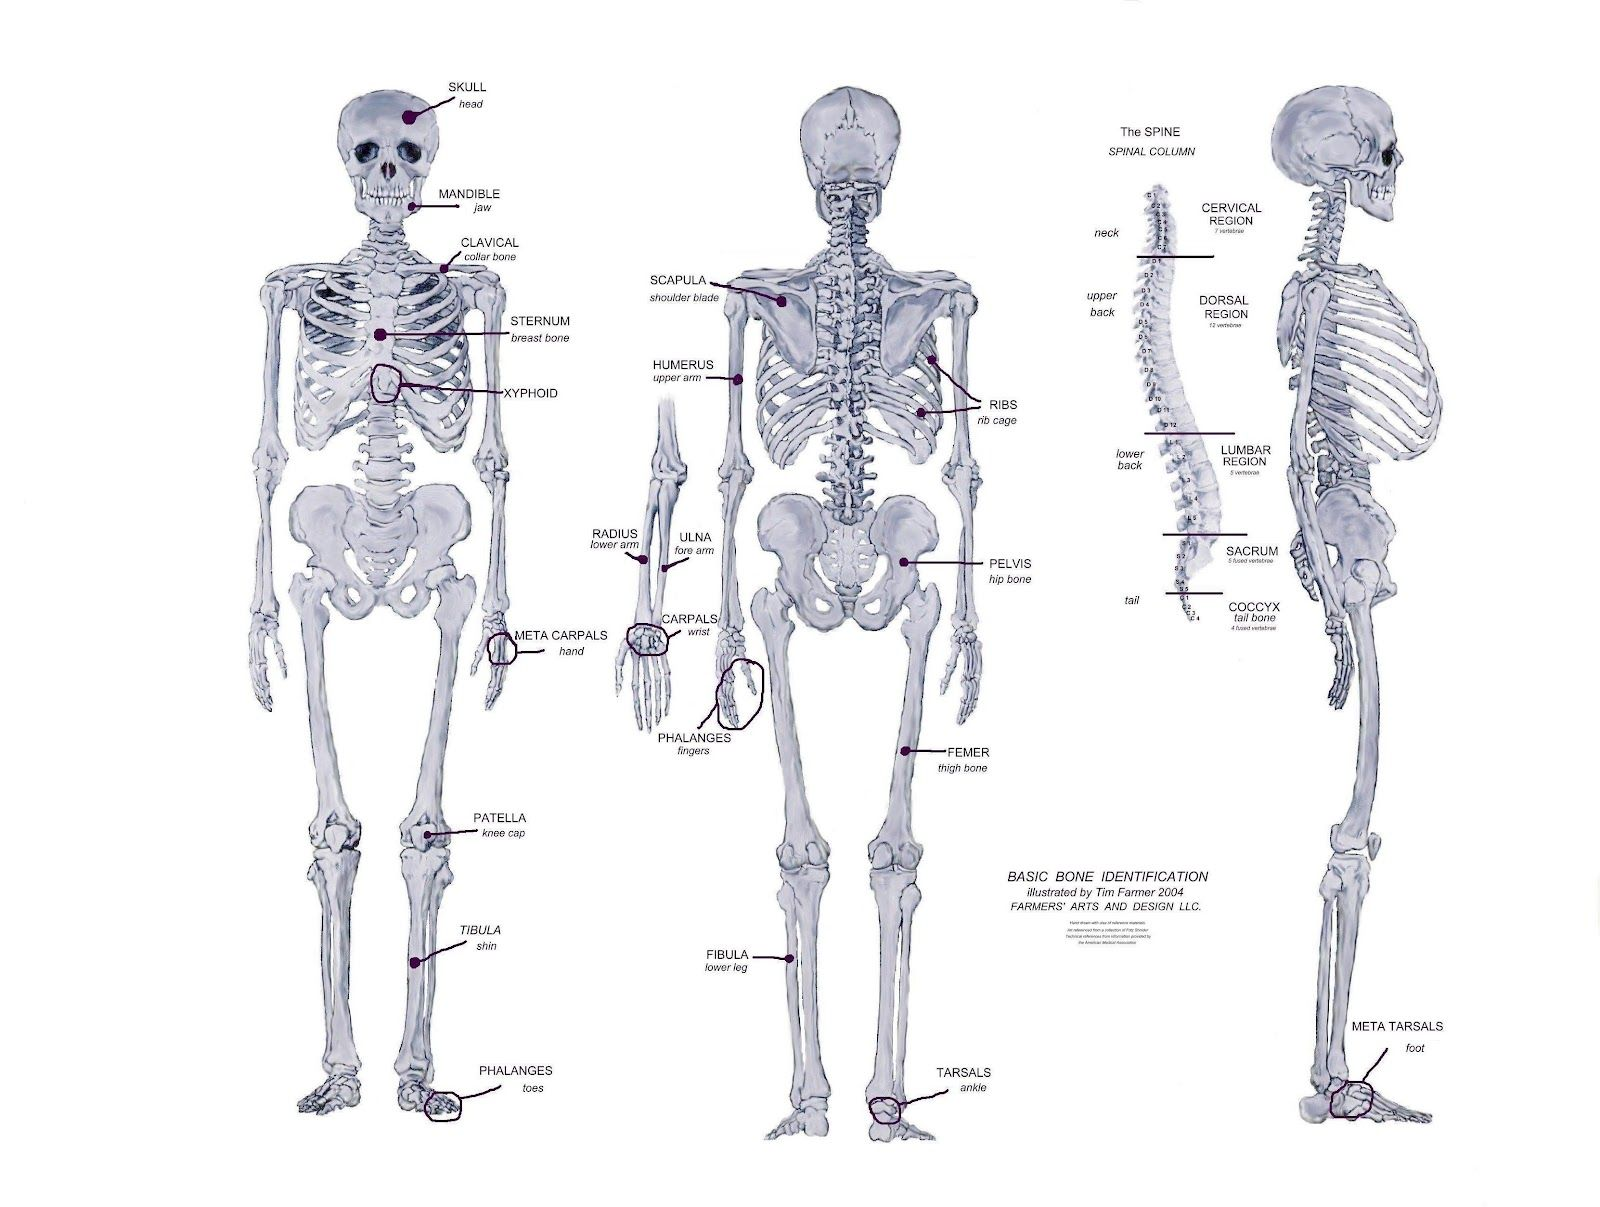 Bones Of The Human Body Facts About Bones Of Human Body The